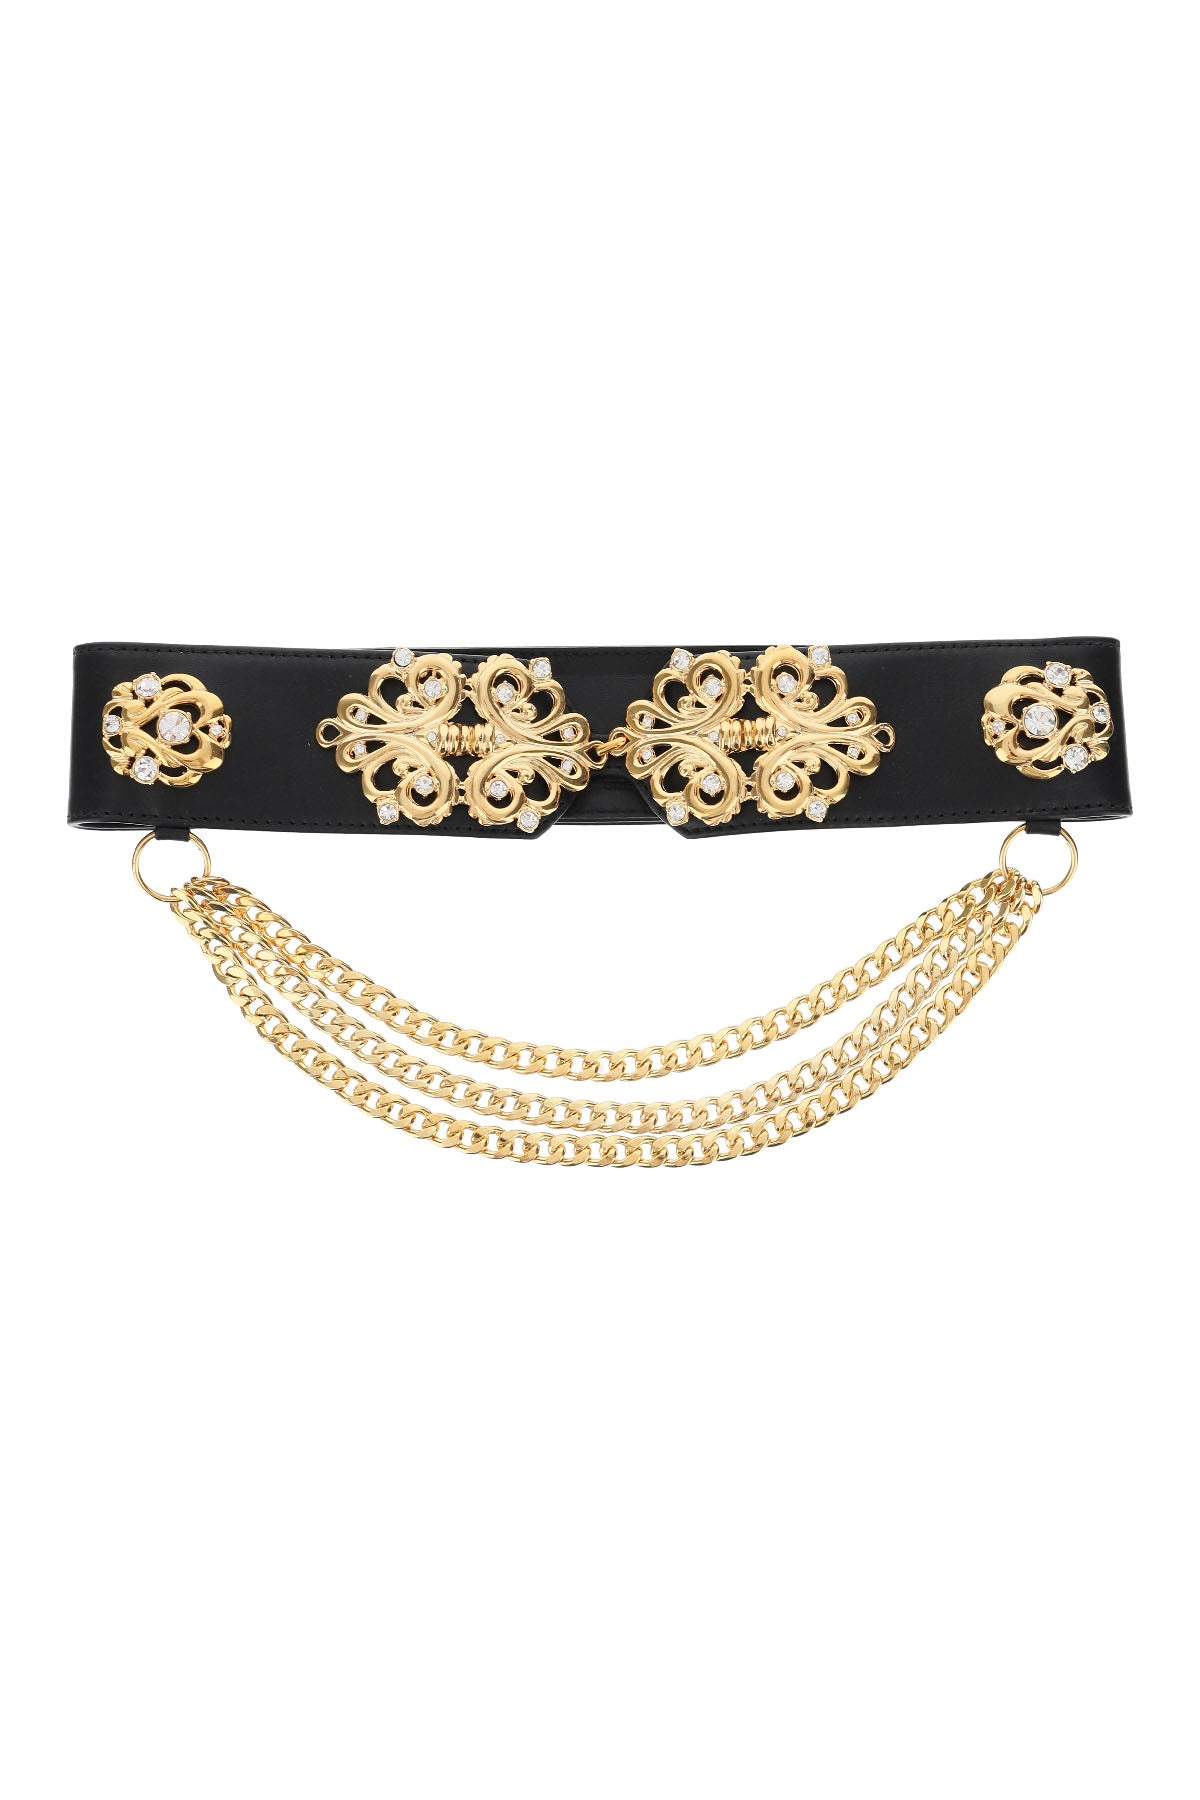 Alessandra Rich ALESSANDRA RICH CHAIN EMBELLISHED BELT